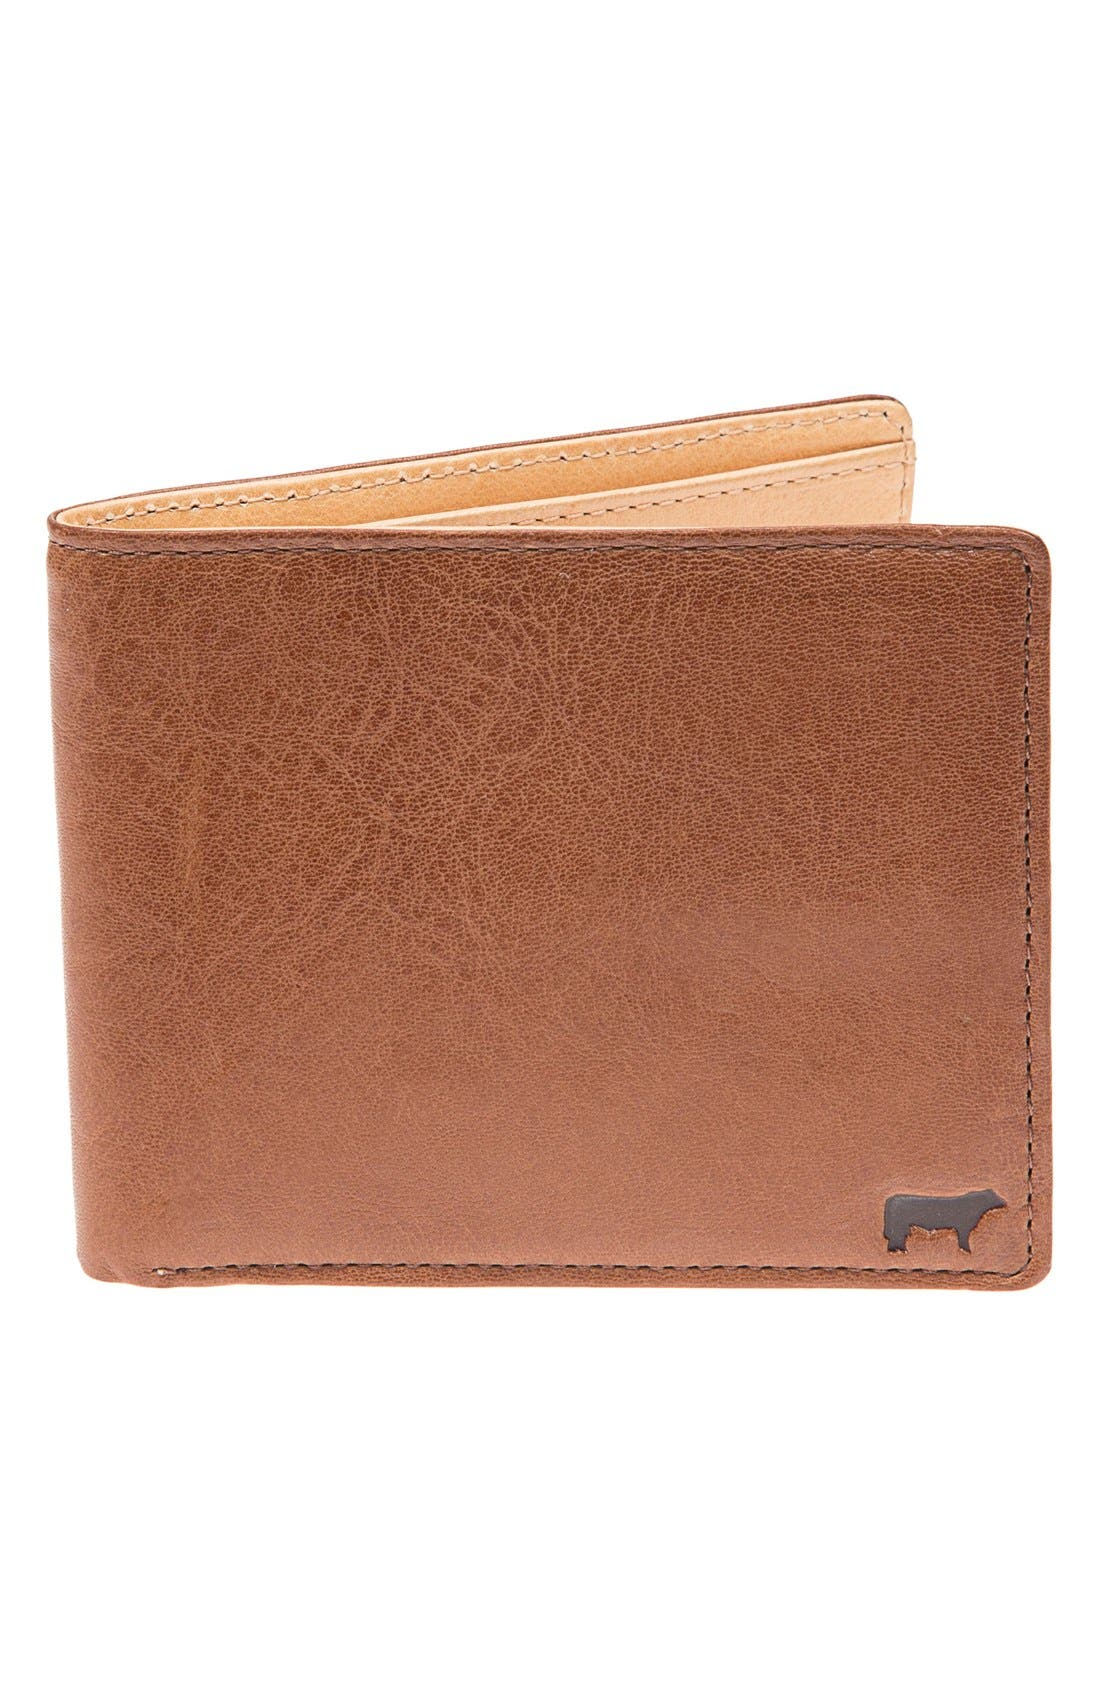 Alternate Image 1 Selected - Will Leather Goods 'Barnard' Wallet